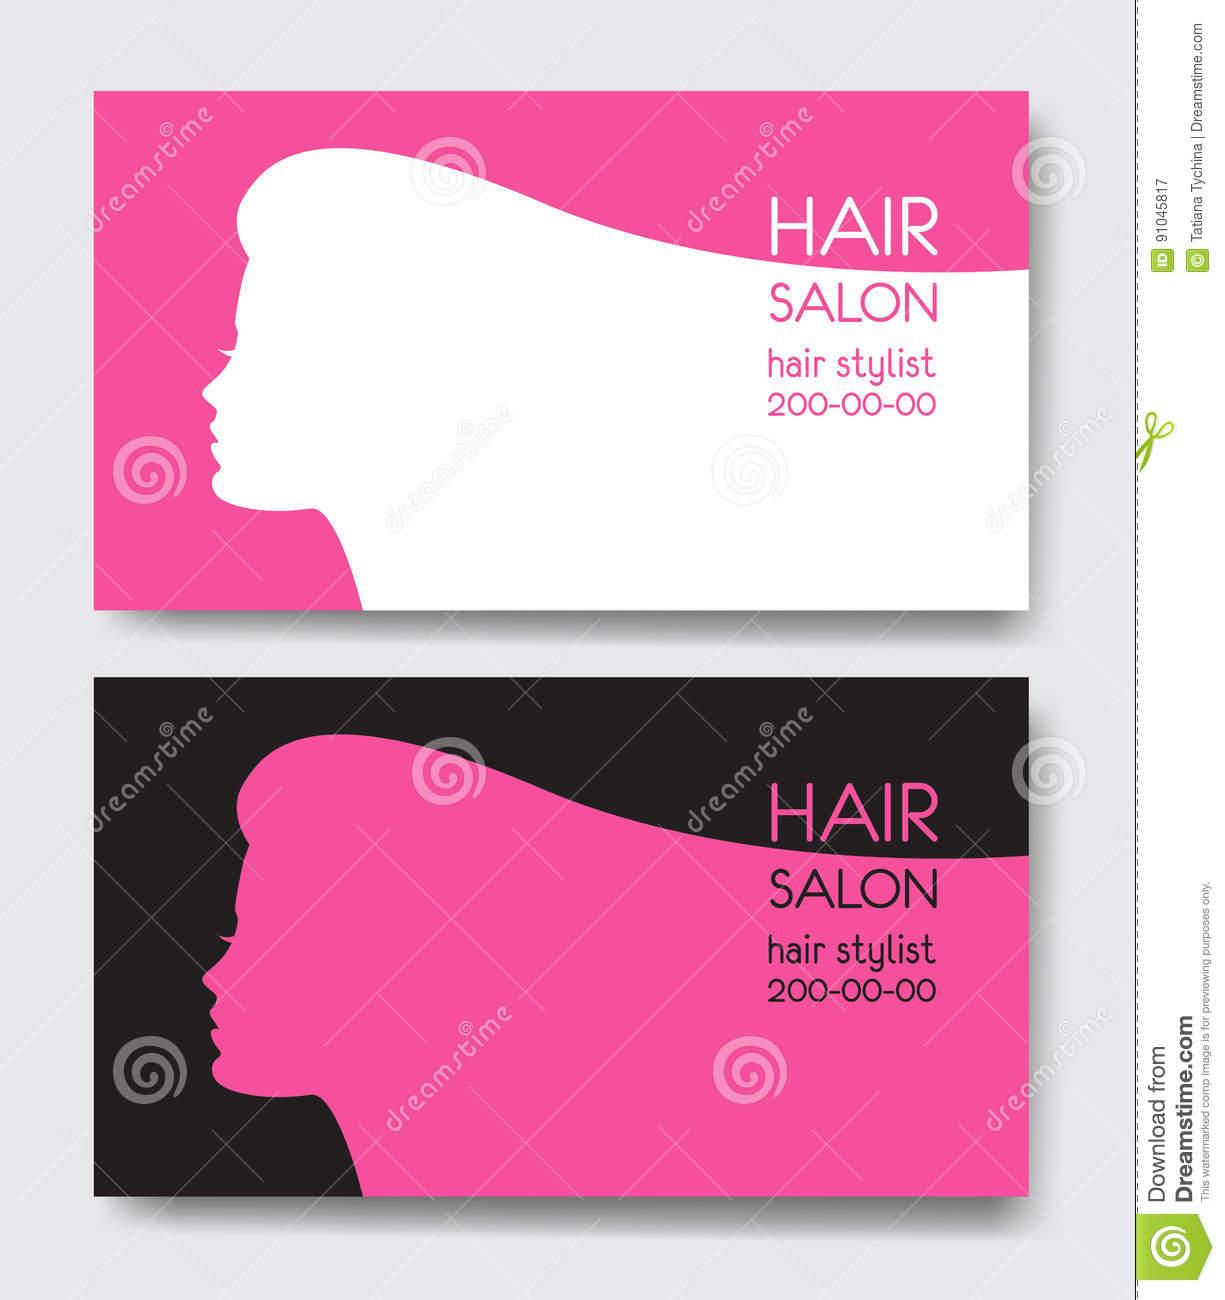 Hair salon business cards vector best hair salon 2017 business card design for hair salon with long haired magicingreecefo Images